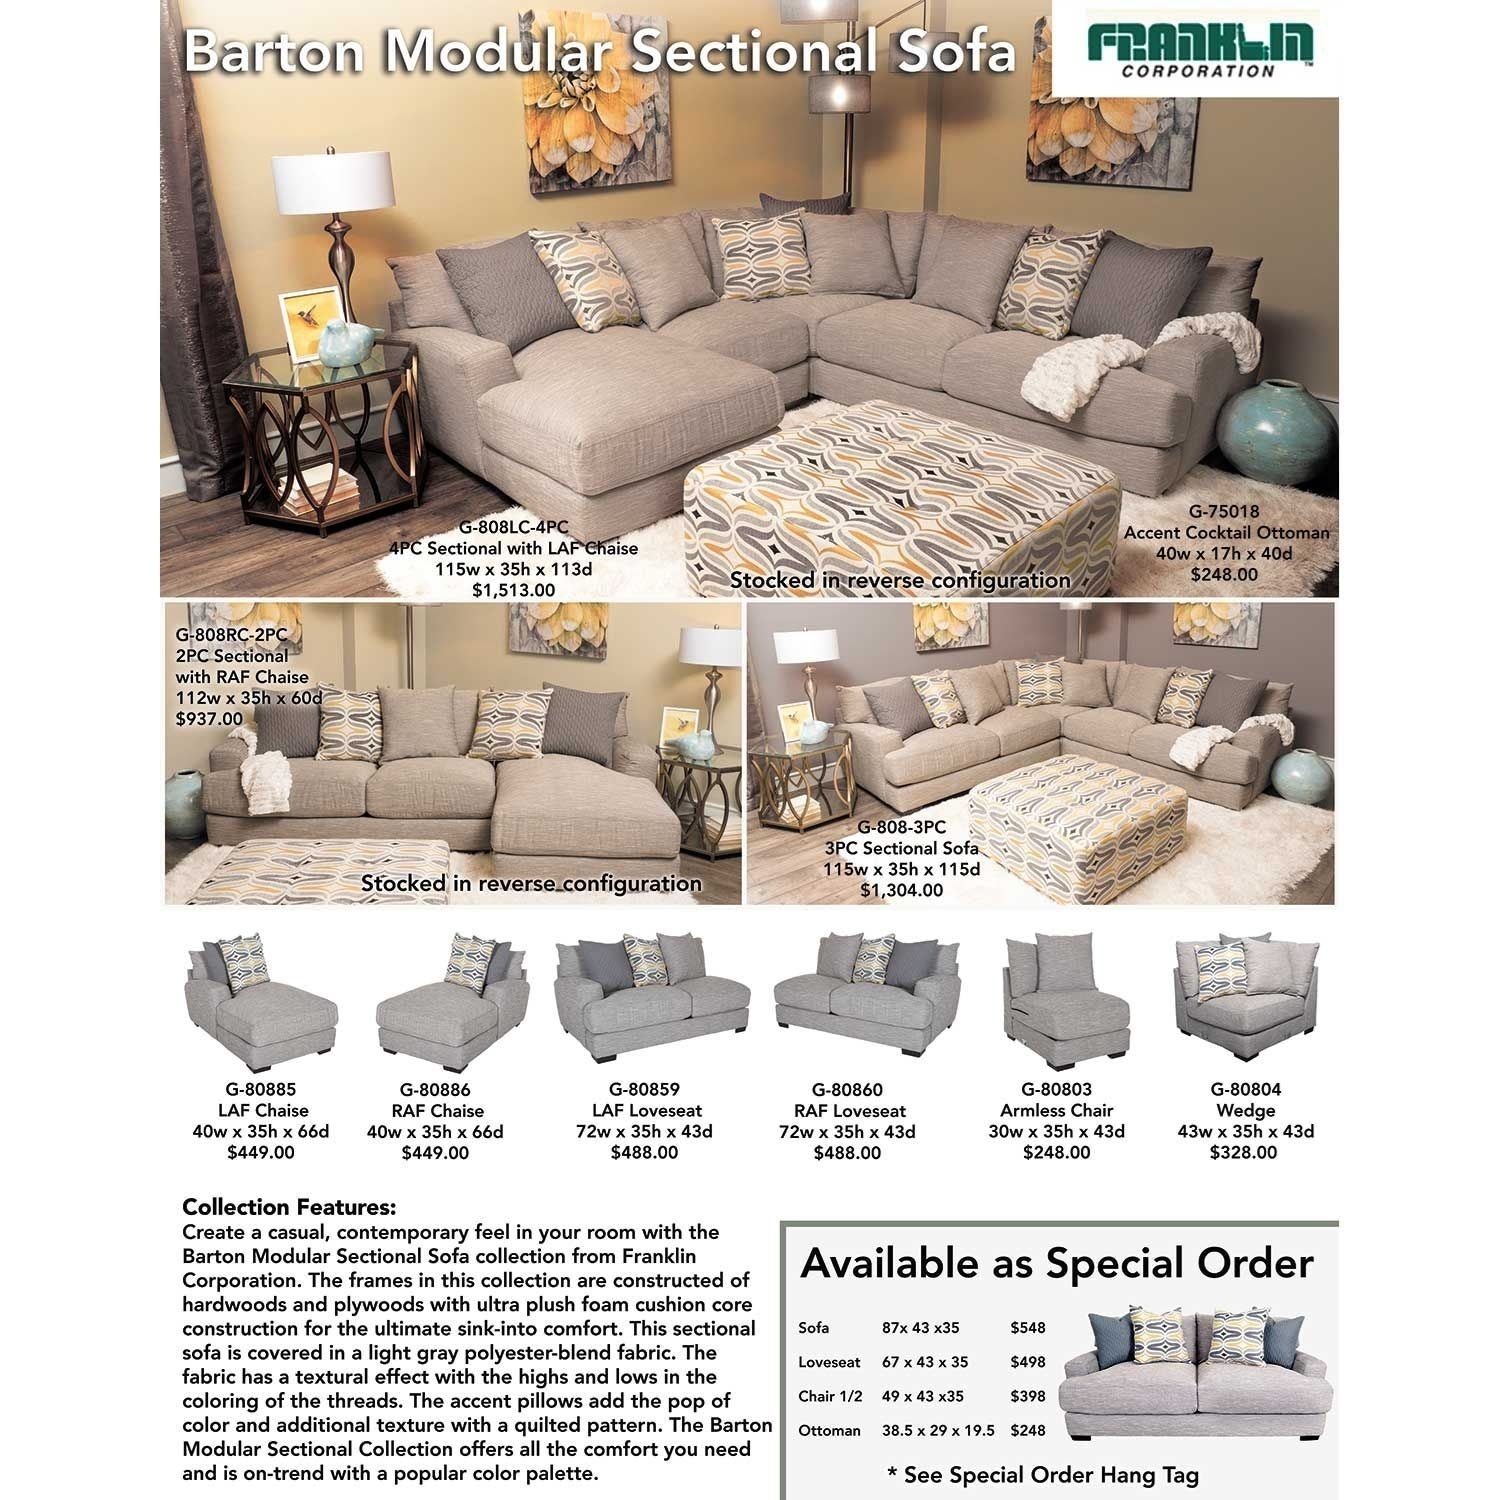 Barton 3Pc Sectional Sofa | G-808-3Pc | 80859 80860 80804 | Franklin throughout Burton Leather 3 Piece Sectionals With Ottoman (Image 1 of 30)